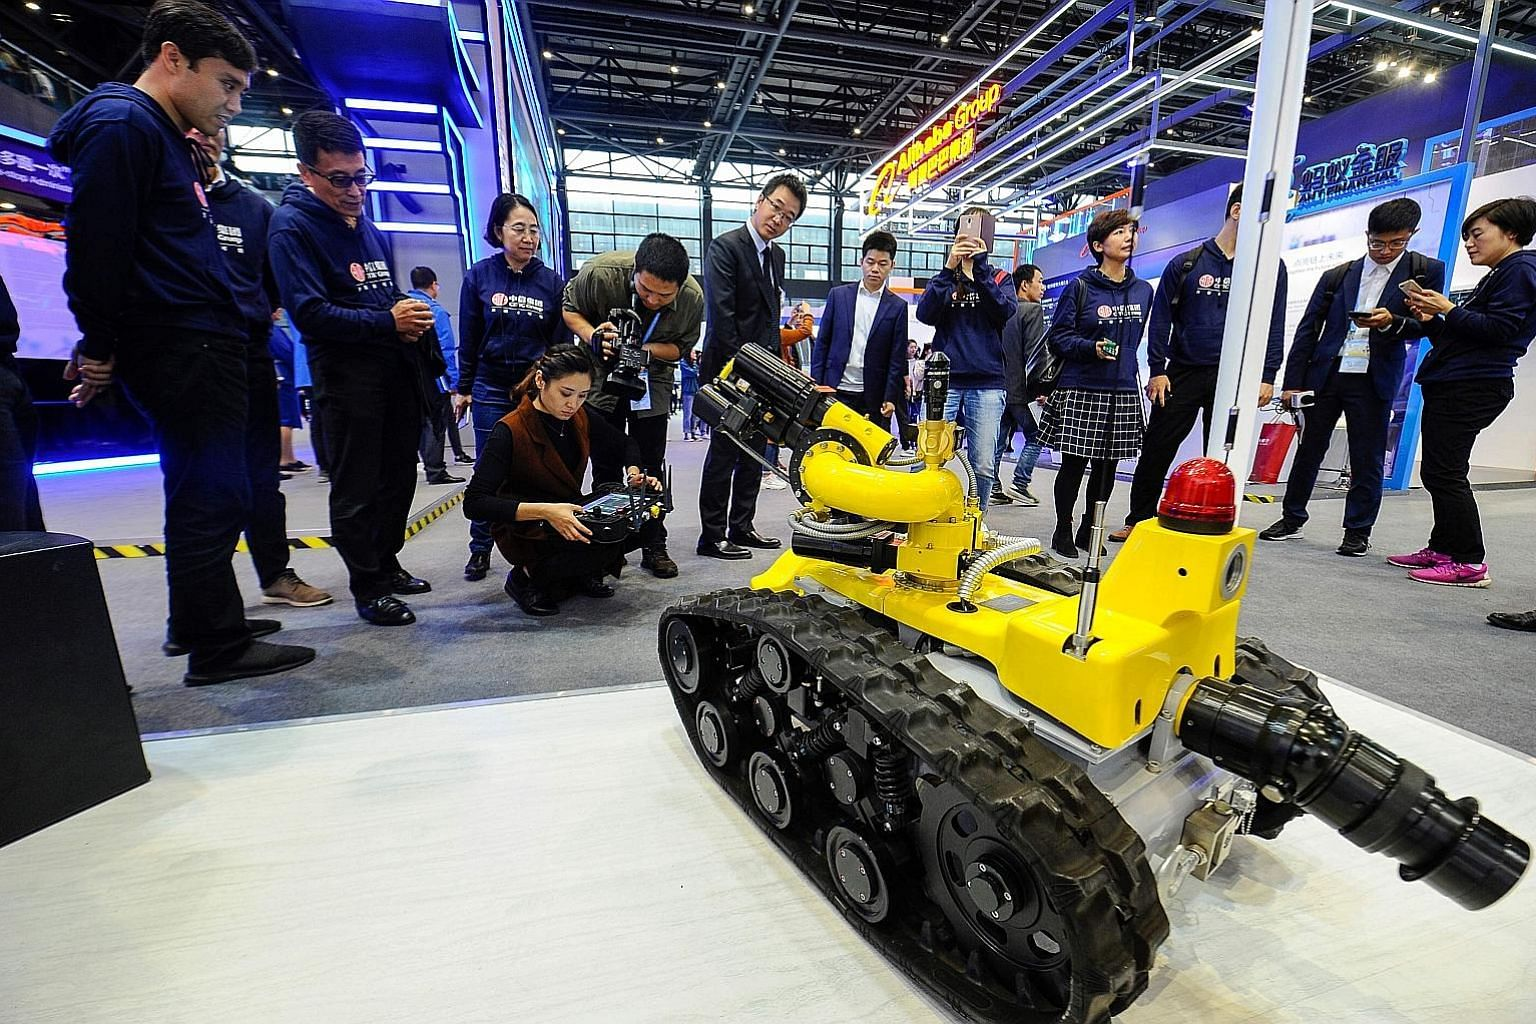 A firefighting robot on display on Tuesday at the Light of Internet Expo ahead of the World Internet Conference in Wuzhen.